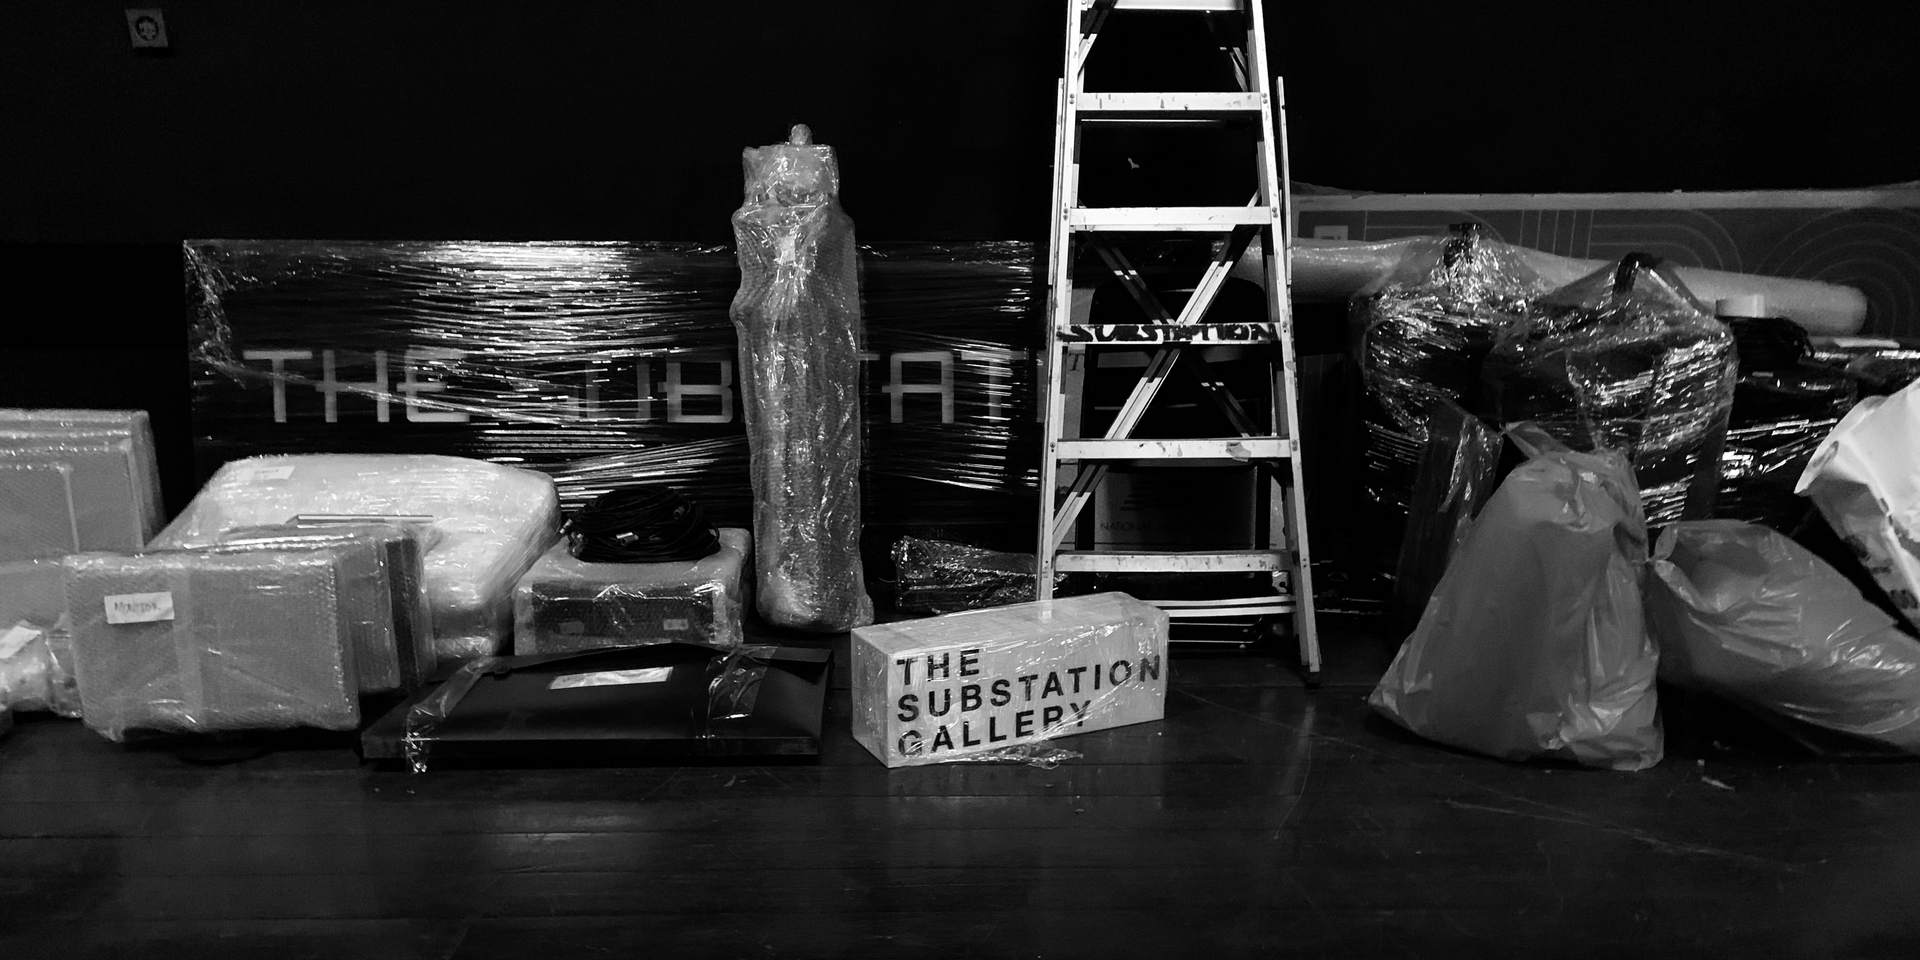 The Substation 1.0's final days as it moves out from 45 Armenian Street - photo gallery